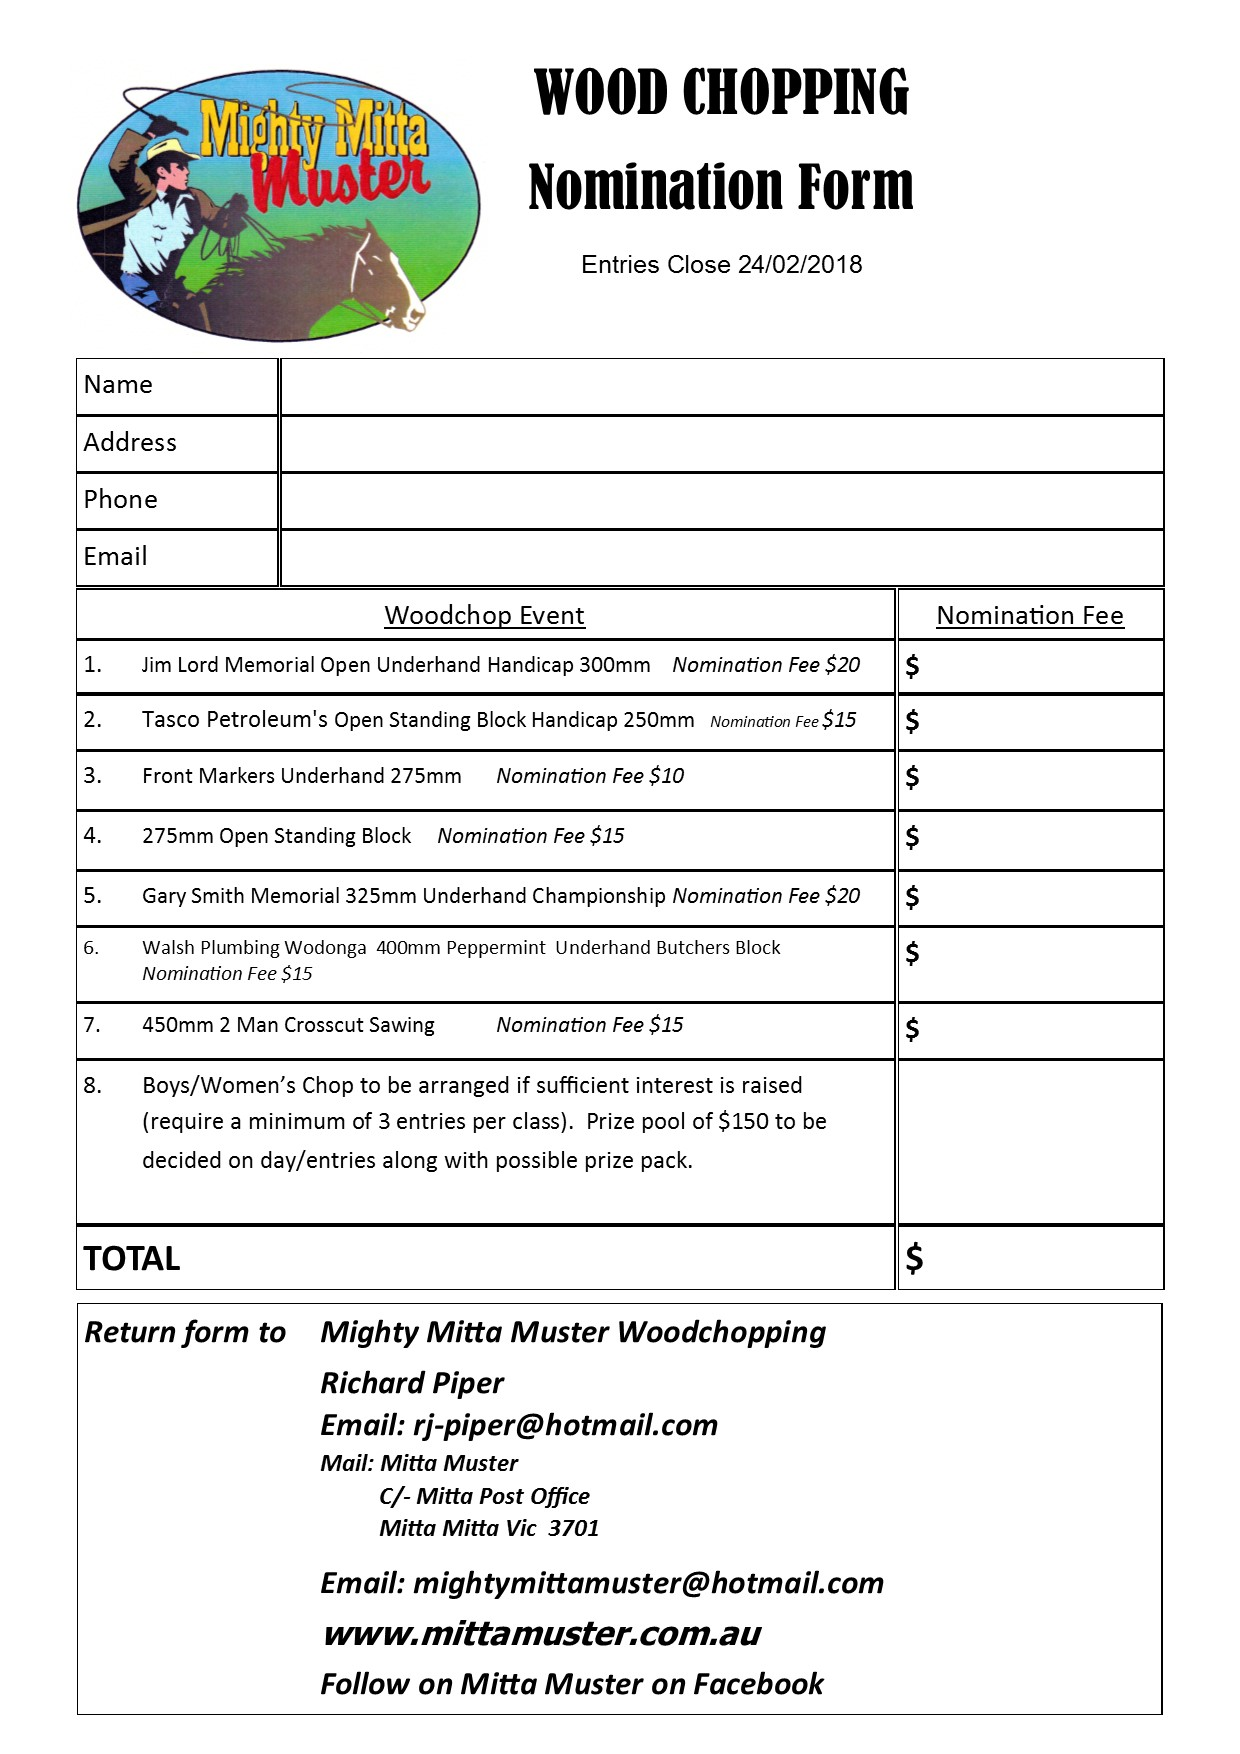 Wood chopping entry form 2018